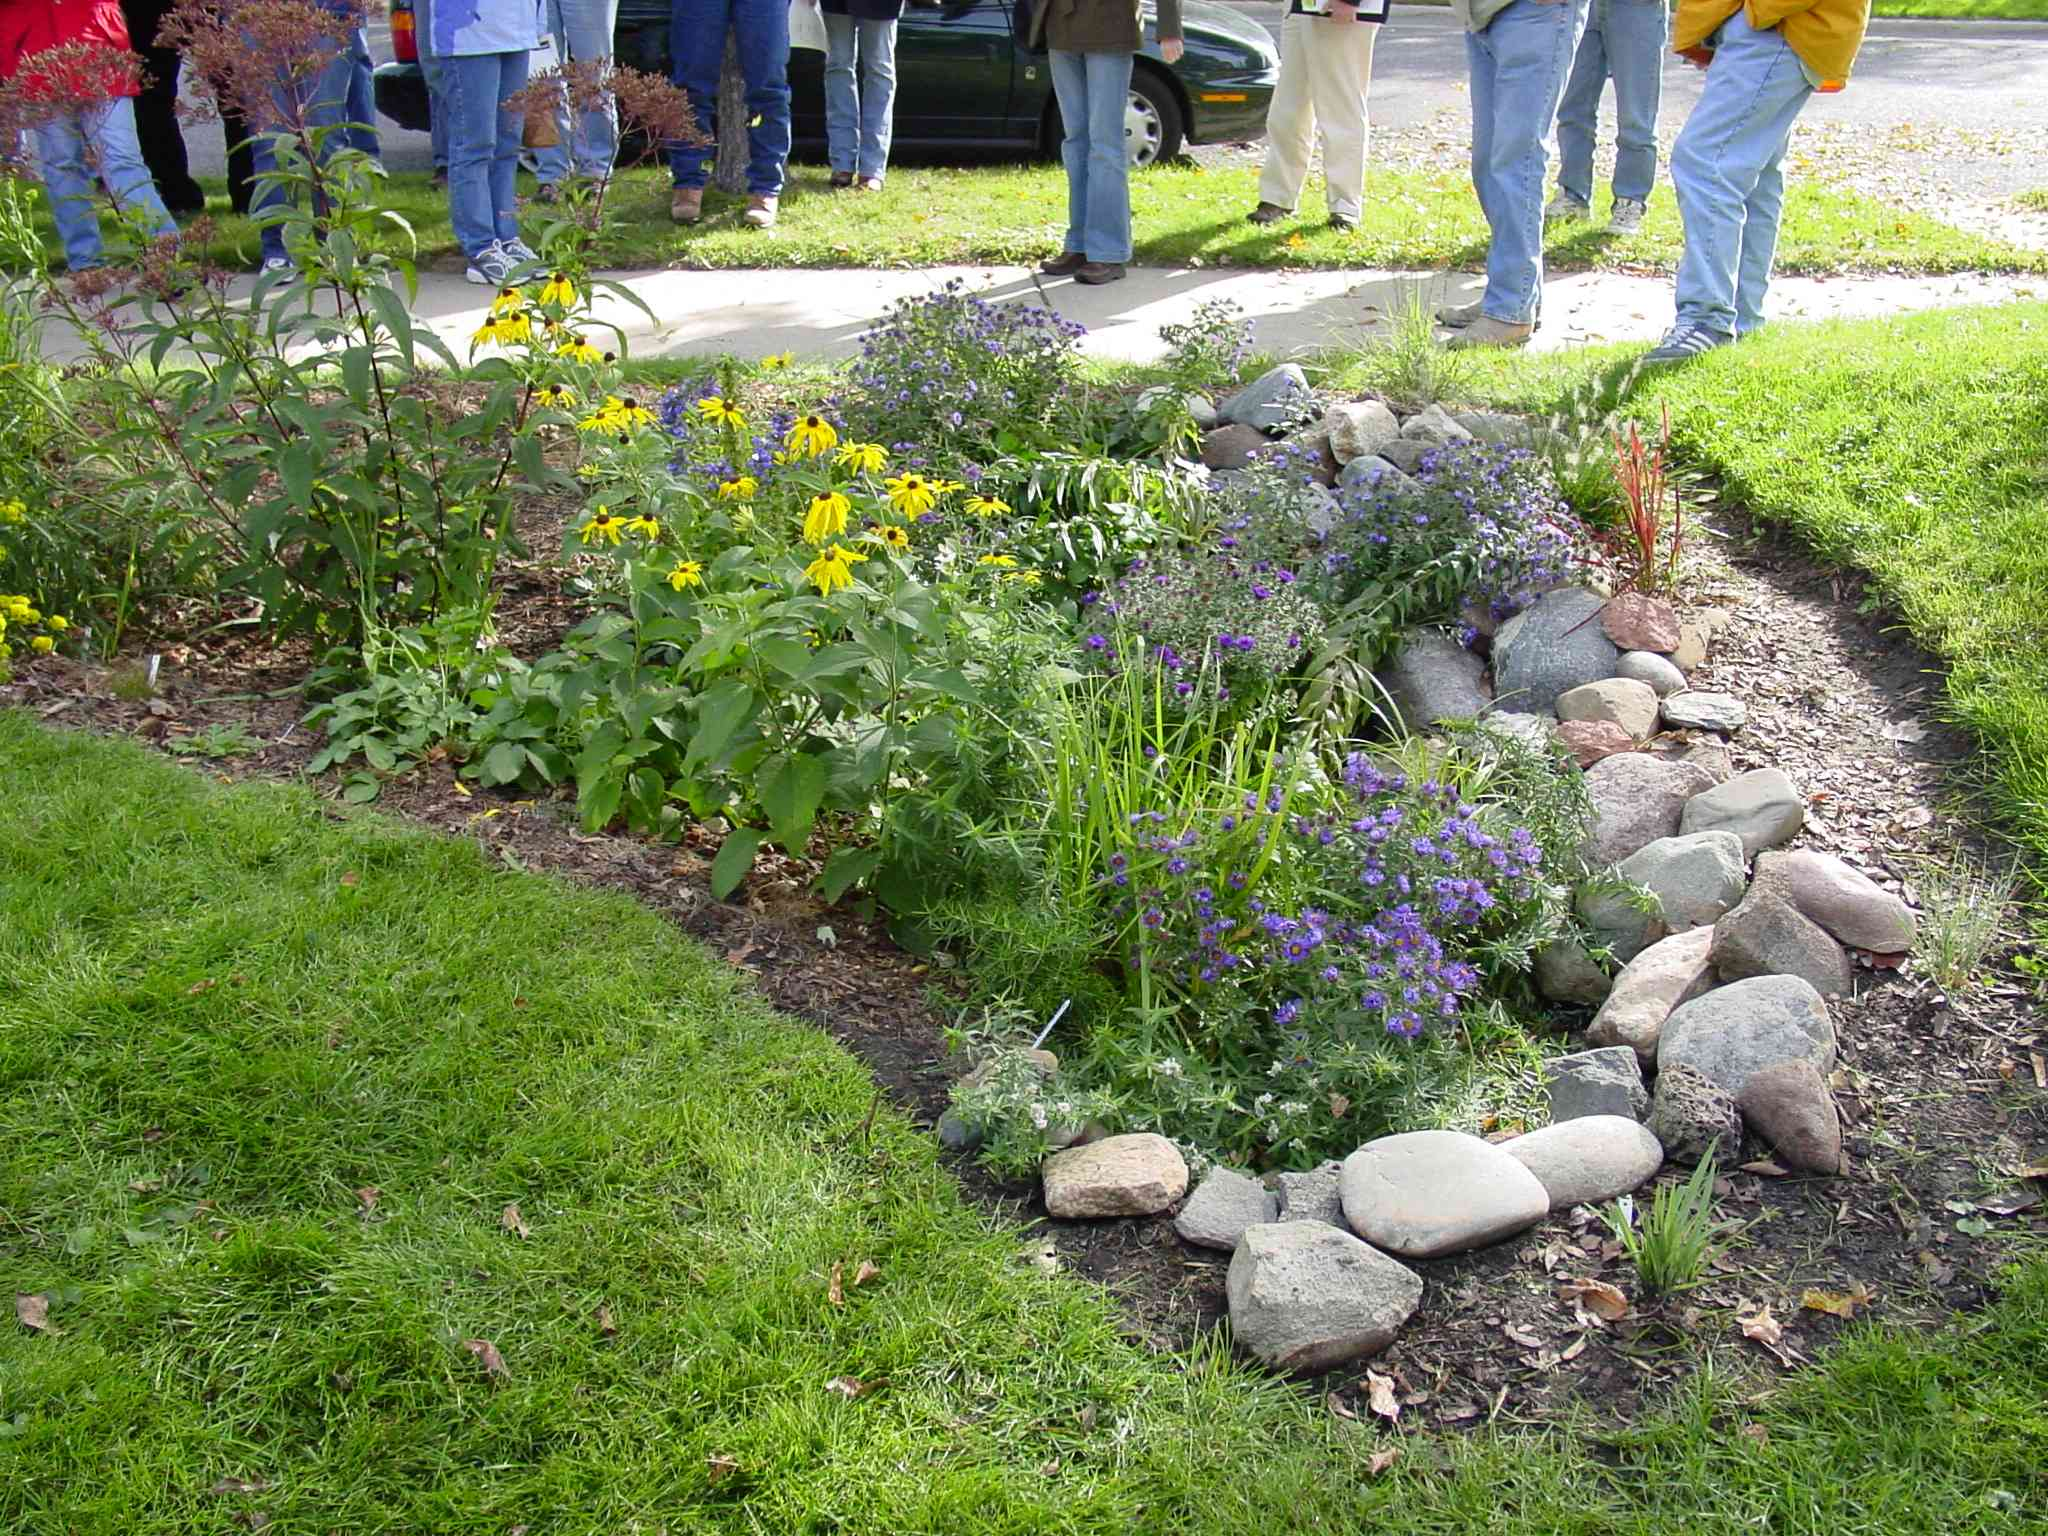 Rain garden design examples inspiration interior designs for Garden design examples